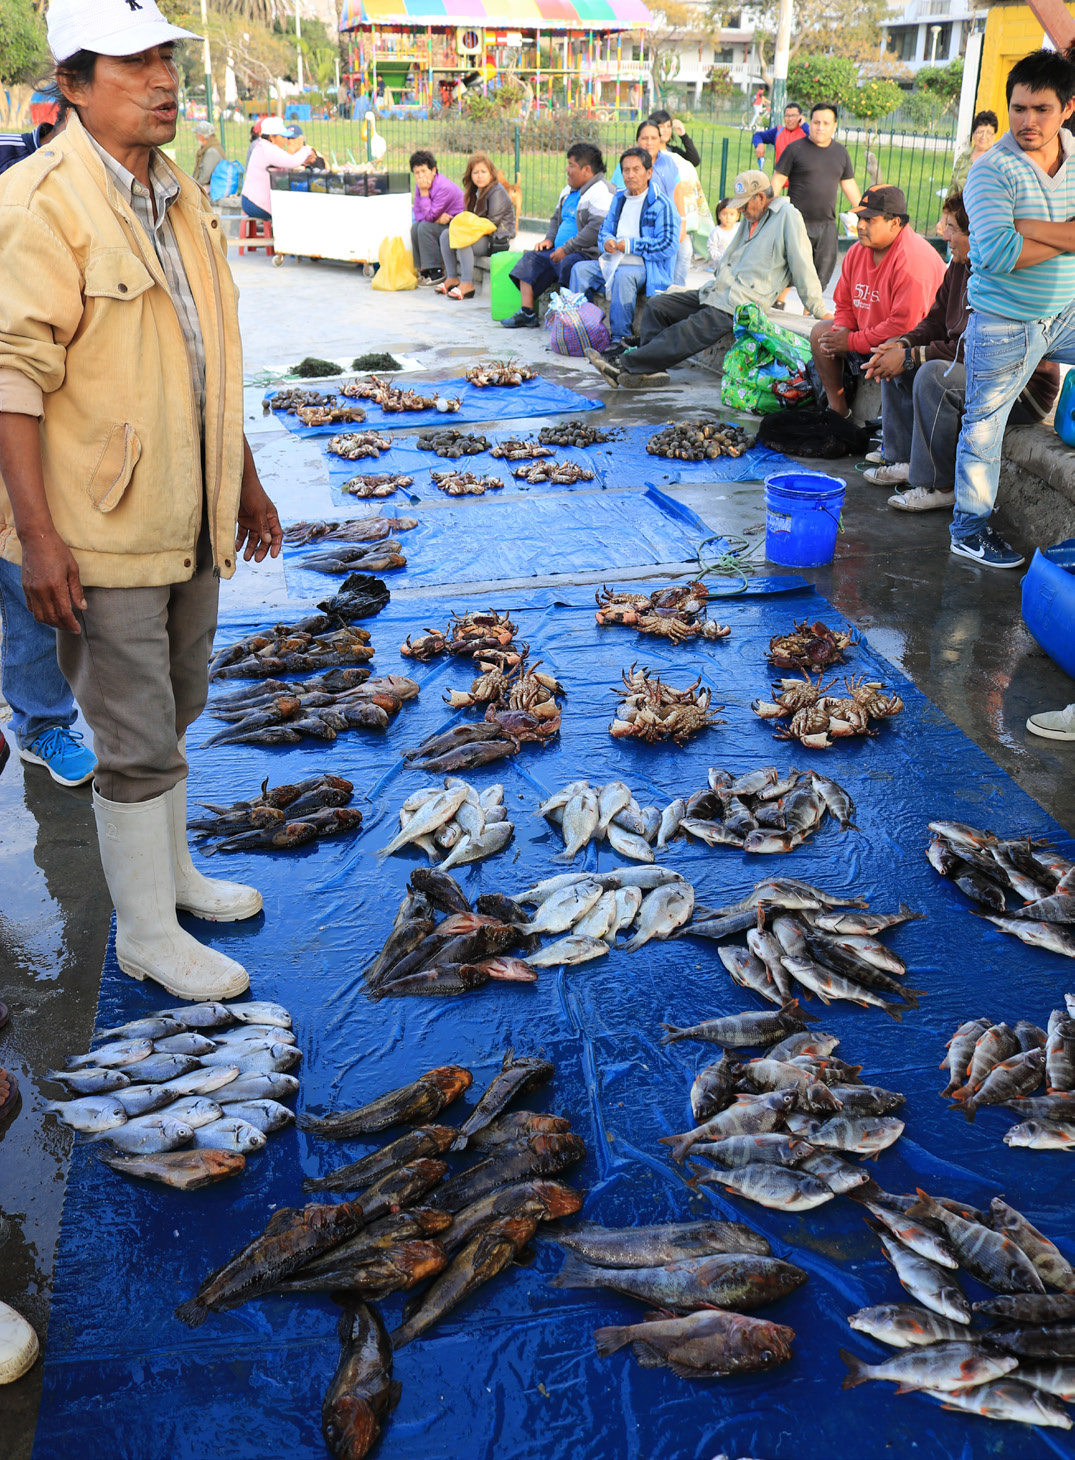 A fisher's catch of the day on sale dockside, Peru. Photo © Jeremy Rude/TNC